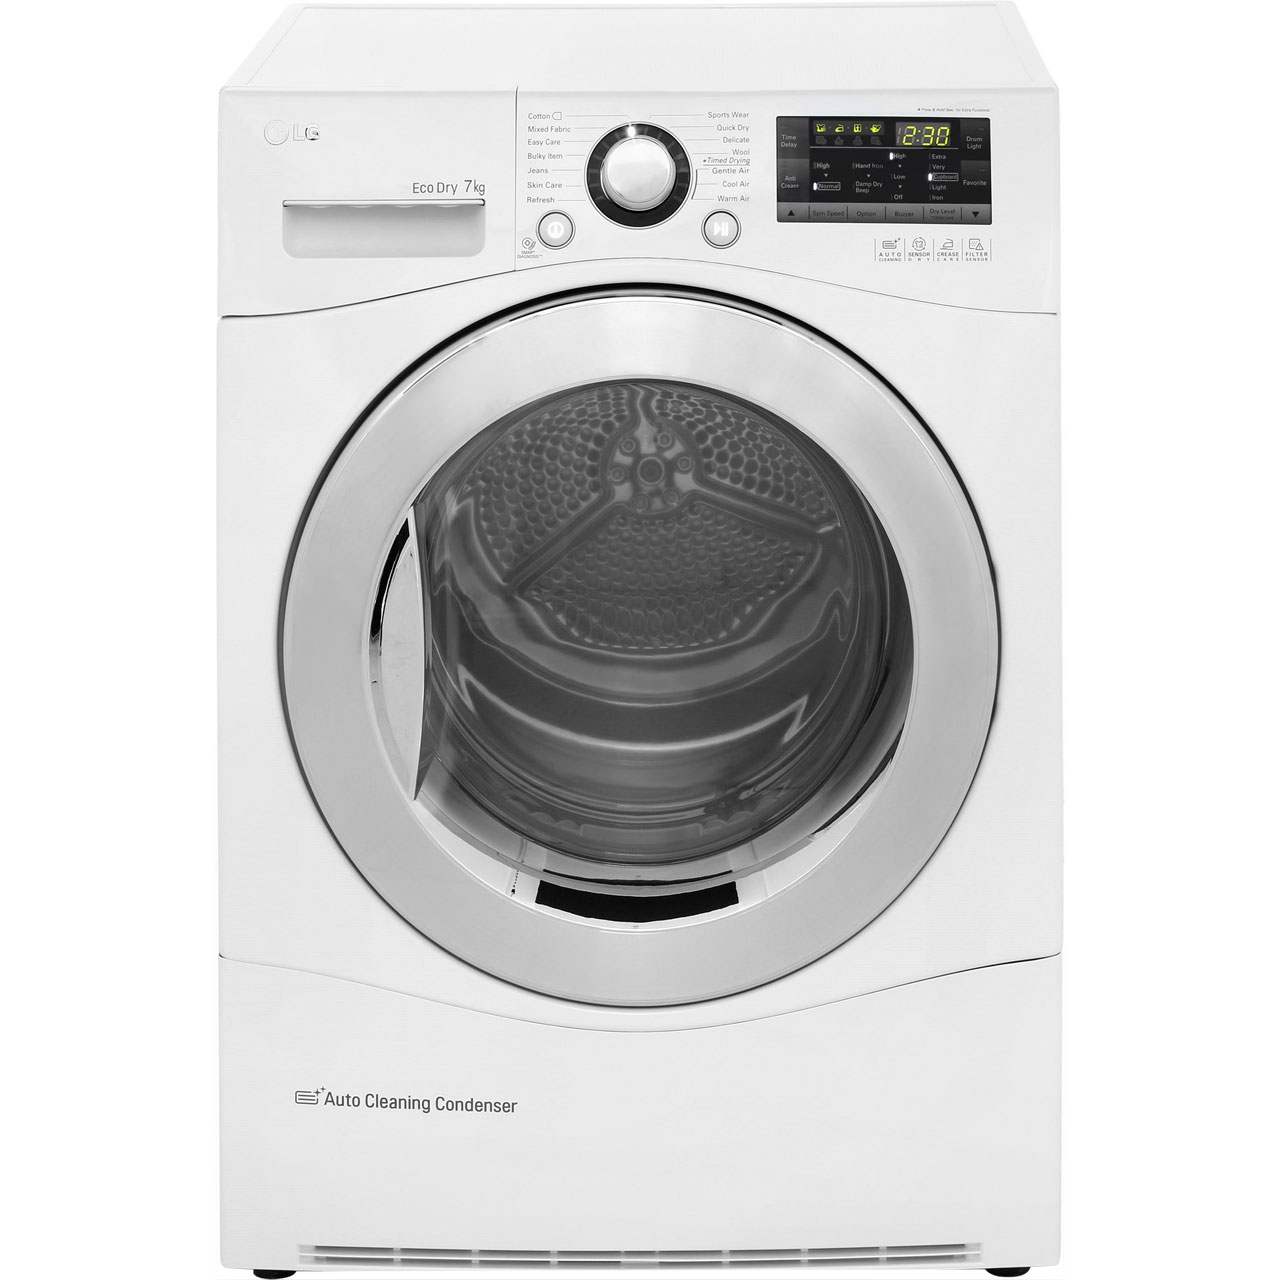 lg tumble dryer shop for cheap tumble dryers and save online. Black Bedroom Furniture Sets. Home Design Ideas